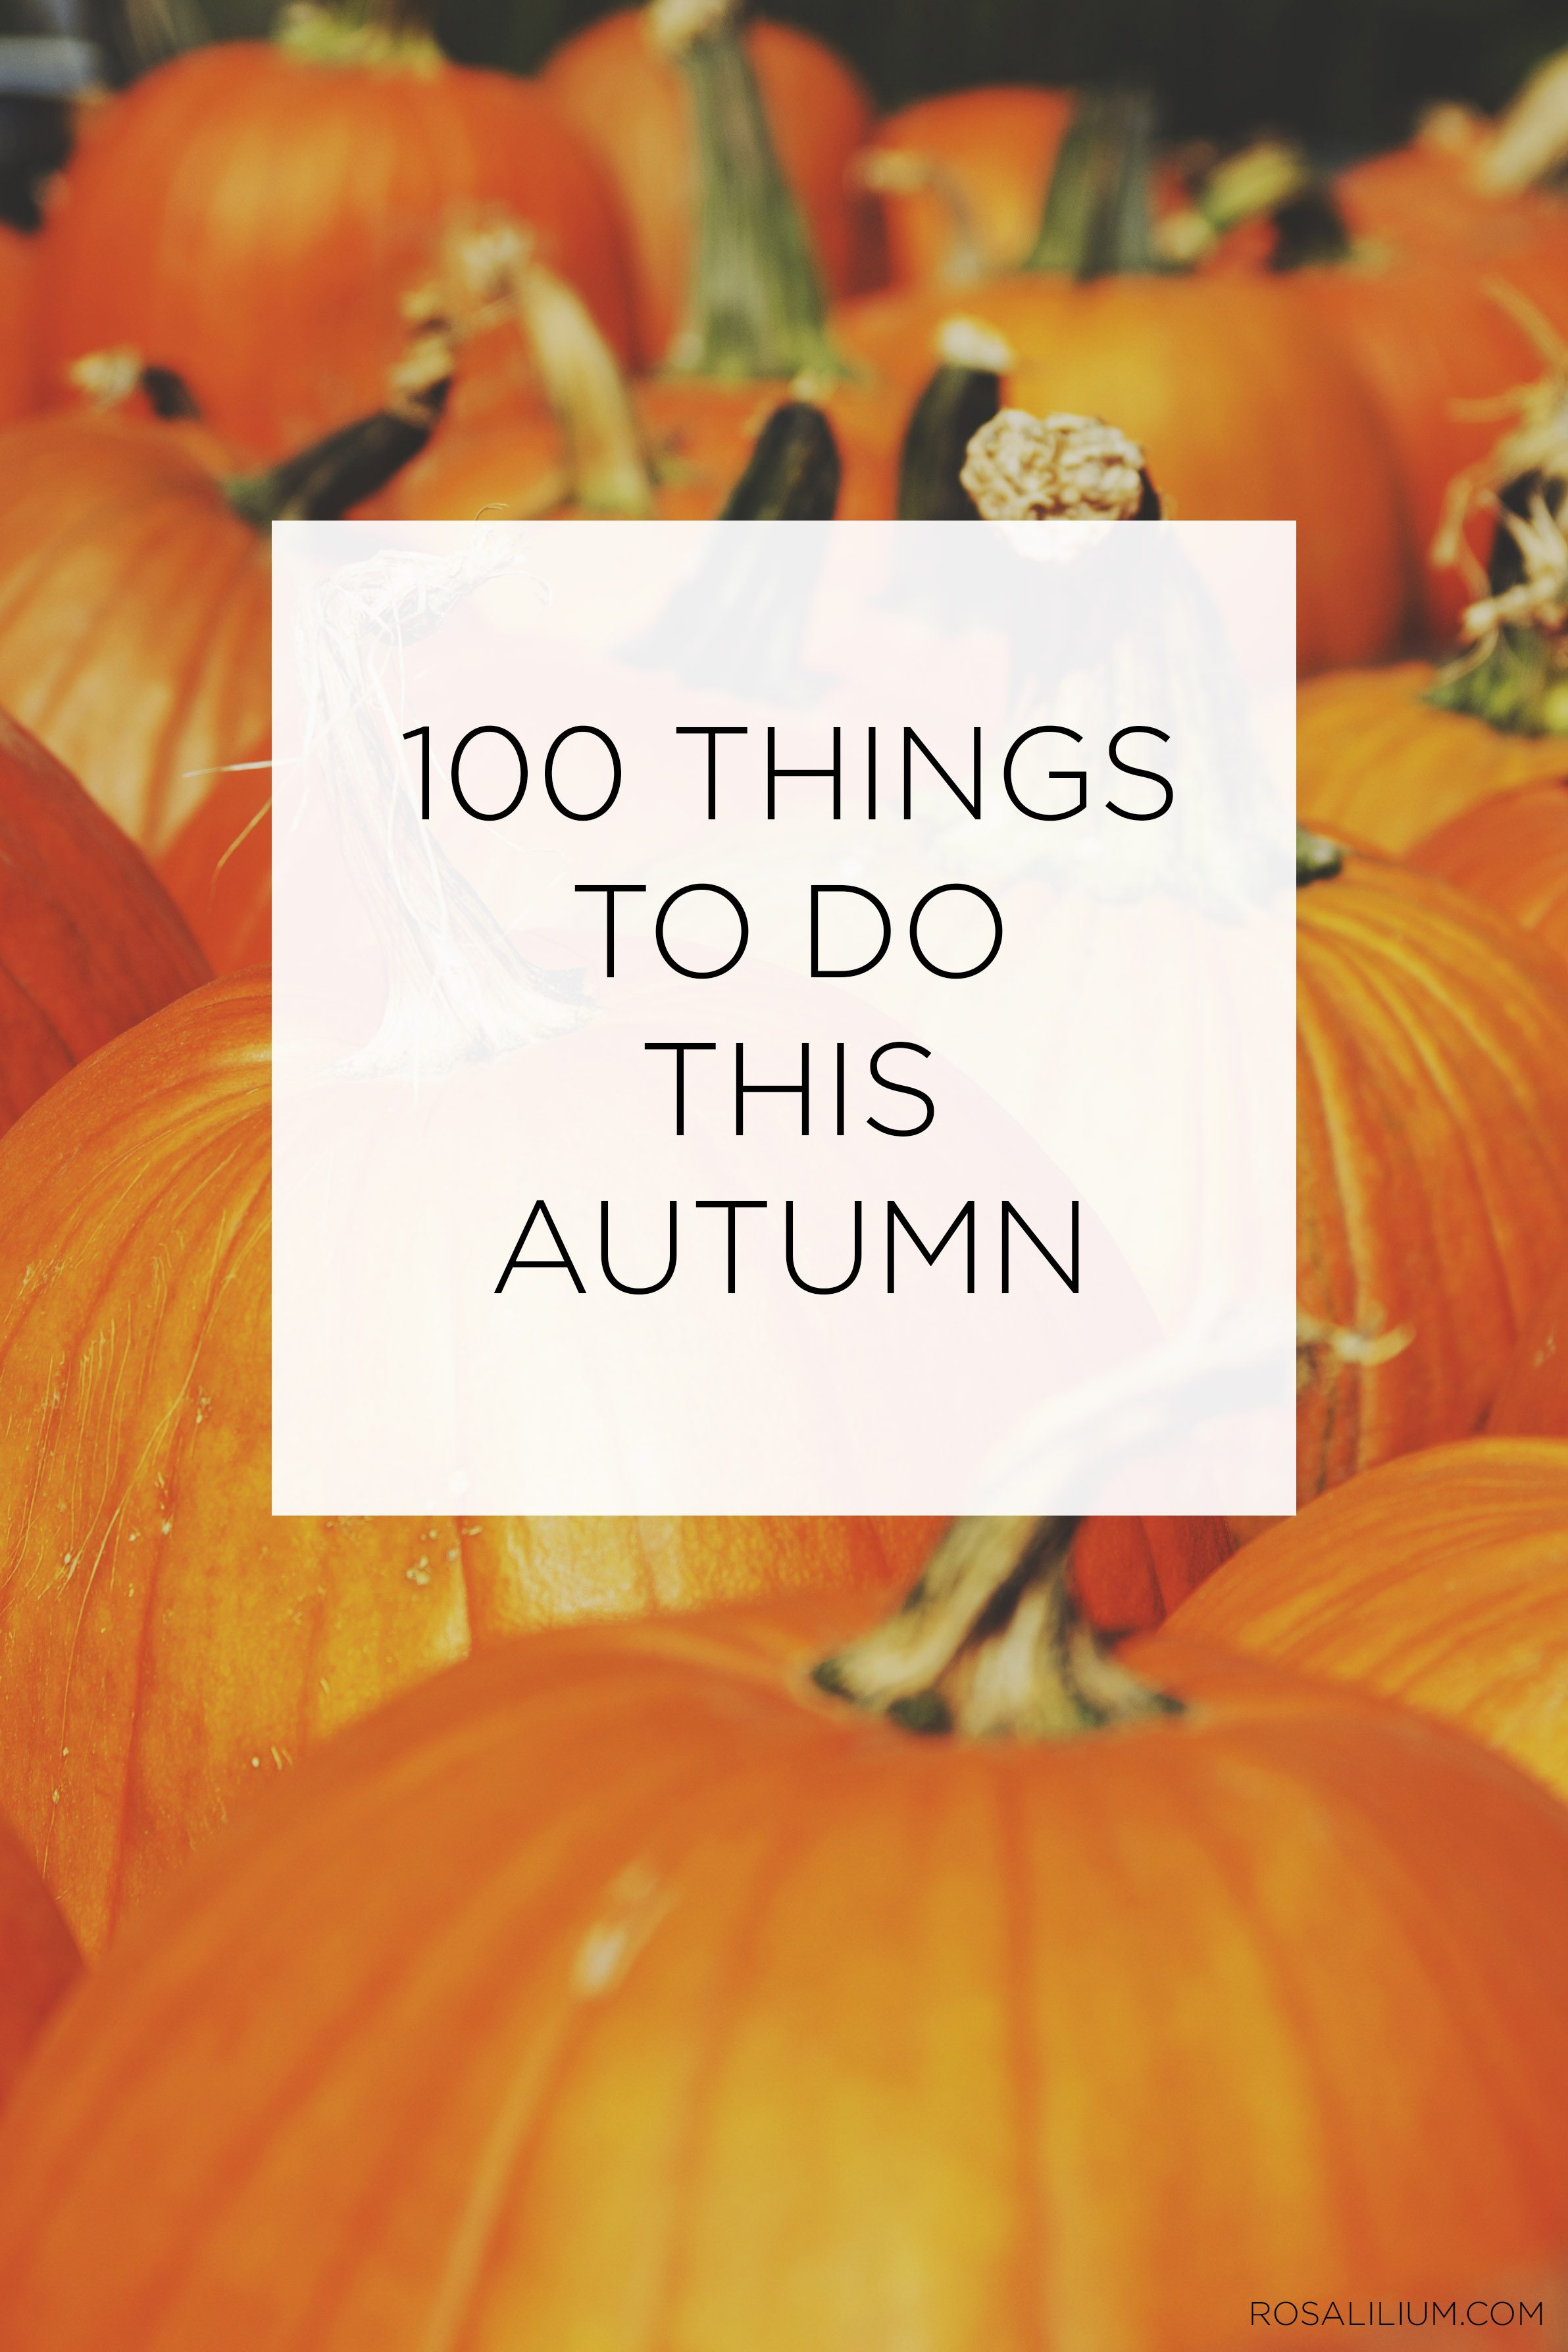 100 Things To Do This Autumn